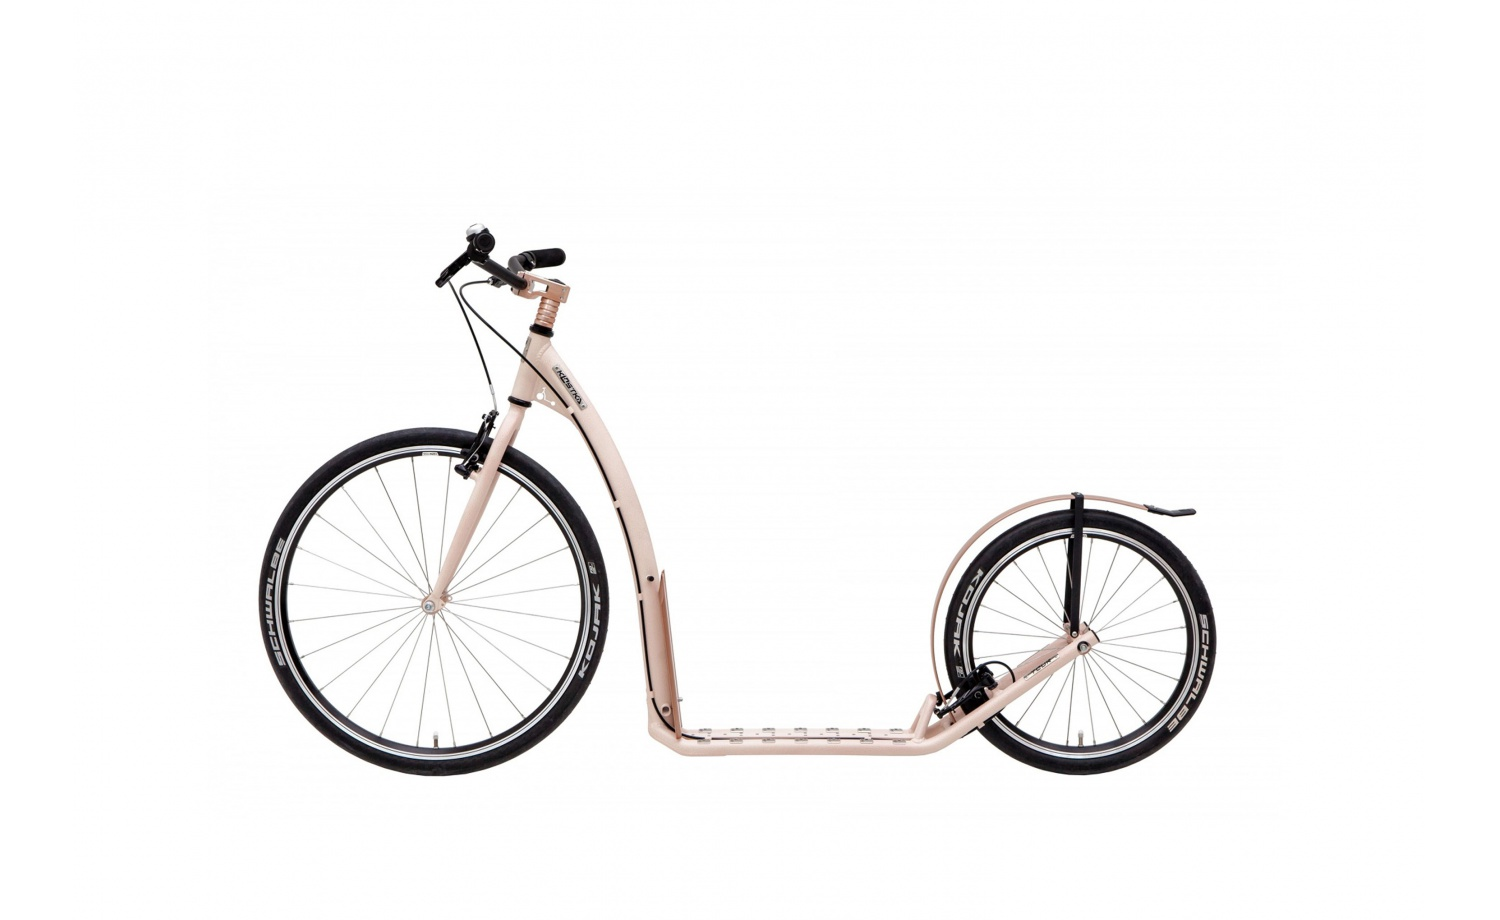 Footbike KOSTKA TOUR Wedding (G5) - Limited wedding edition